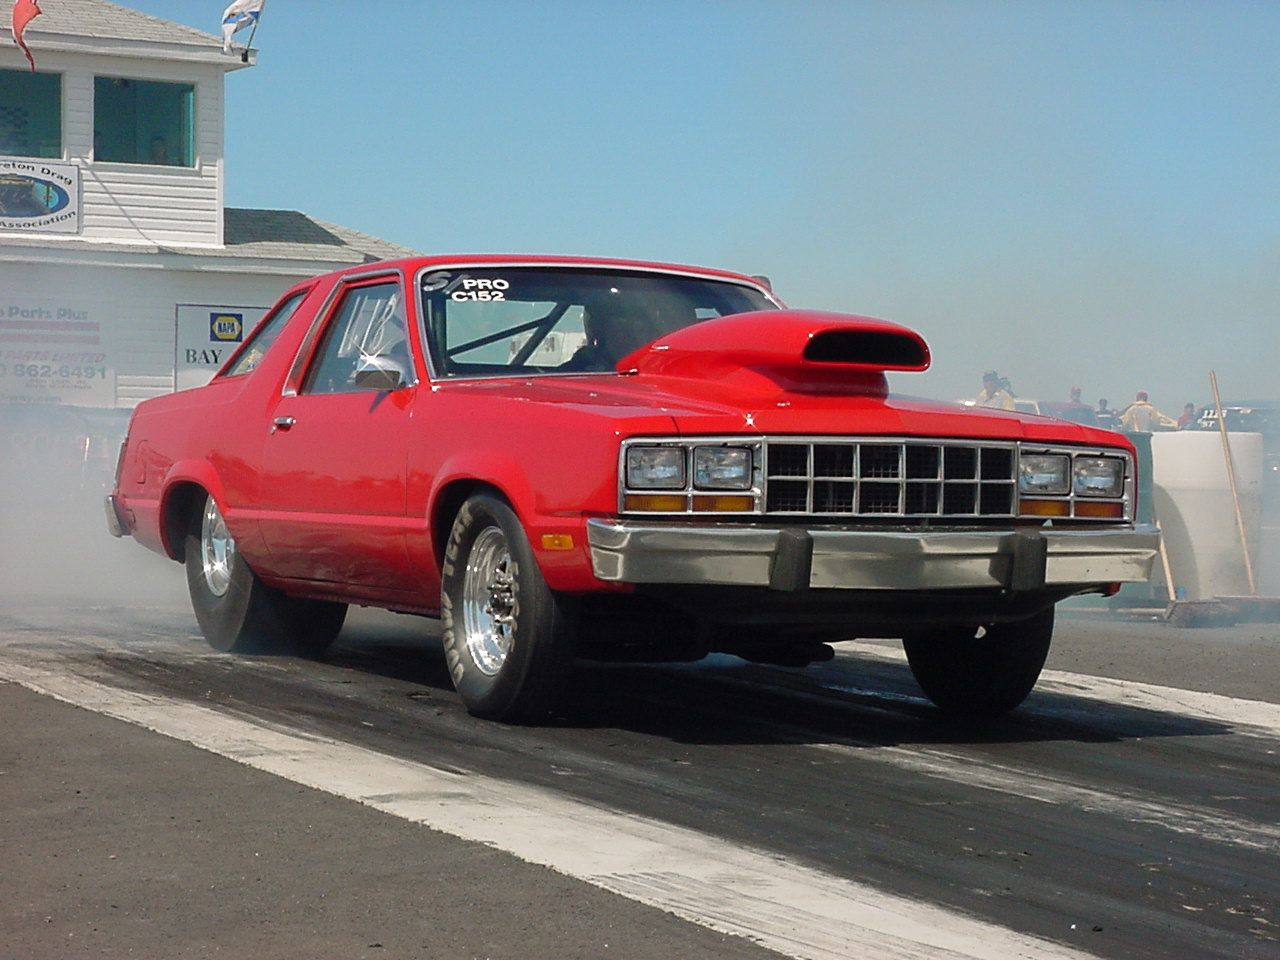 1972 mercury montego n code 429 restomod motorcycle custom - 1981 Ford Fairmont This Would Be A Great Bracket Racing Car For Me